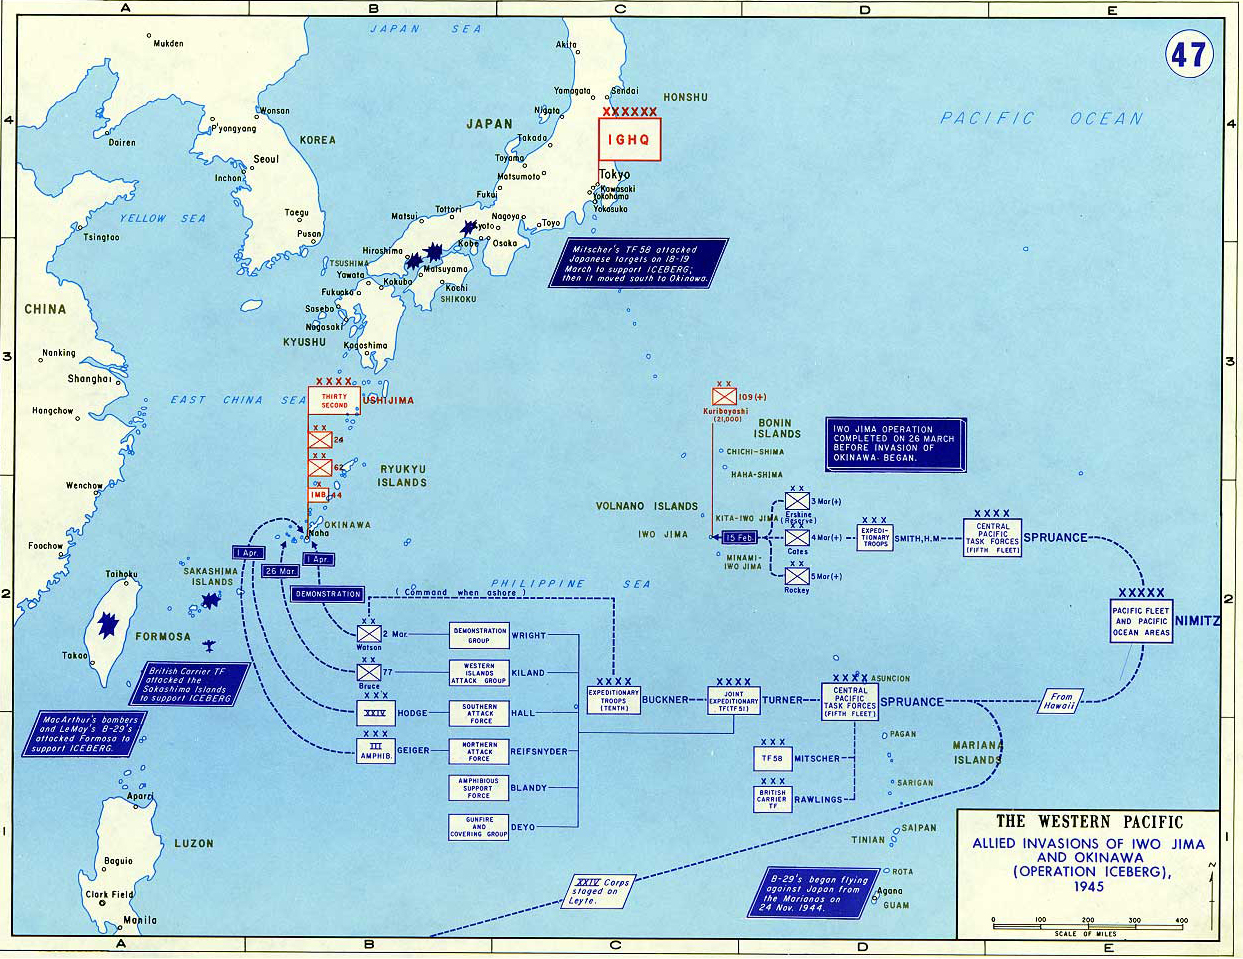 Map of wwii invasion of iwo jima and okinawa 1945 map of world war ii the western pacific 1945 allied invasions of iwo jima gumiabroncs